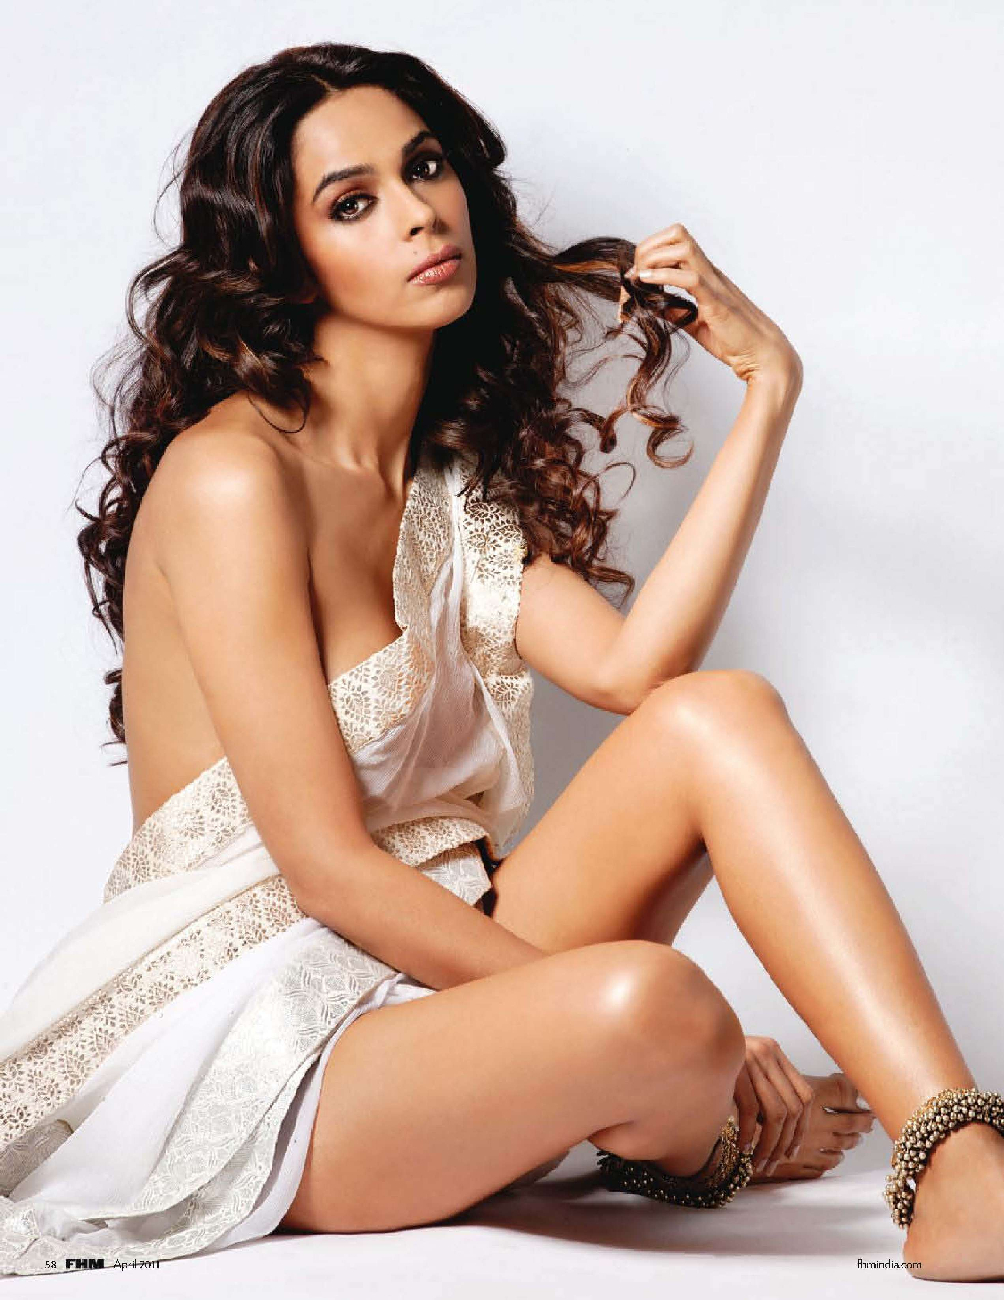 Mallika-Sherawat-Hot-On-FHM-India-April-2011-Stills-HQ-1